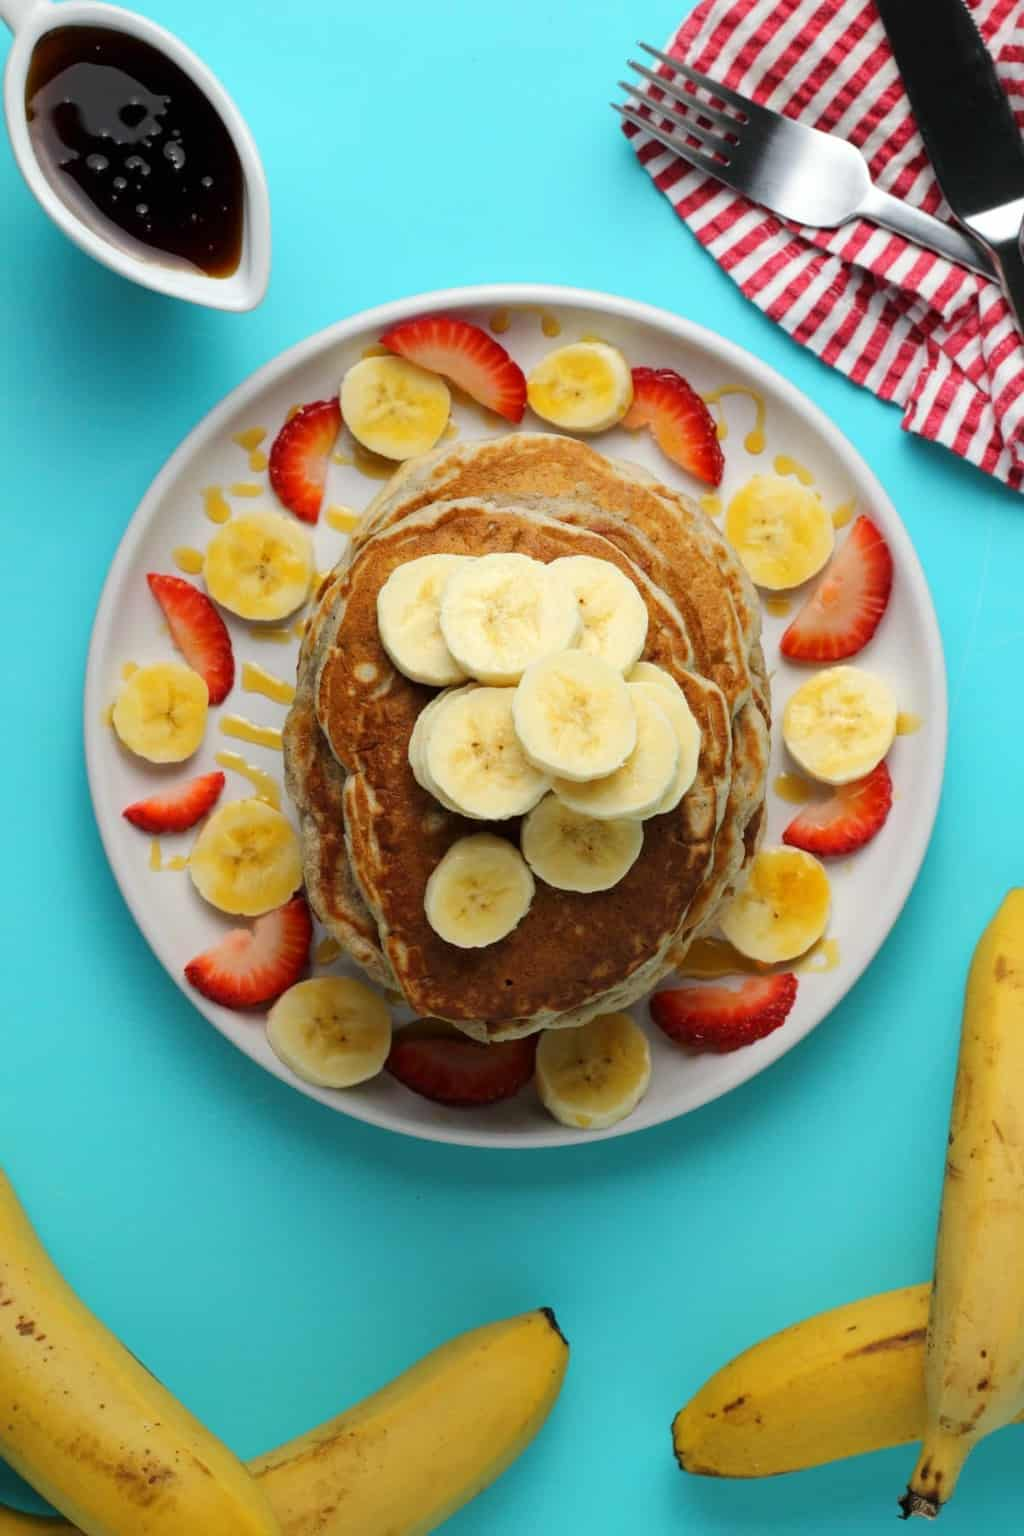 A stack of vegan banana pancakes topped with sliced banana.